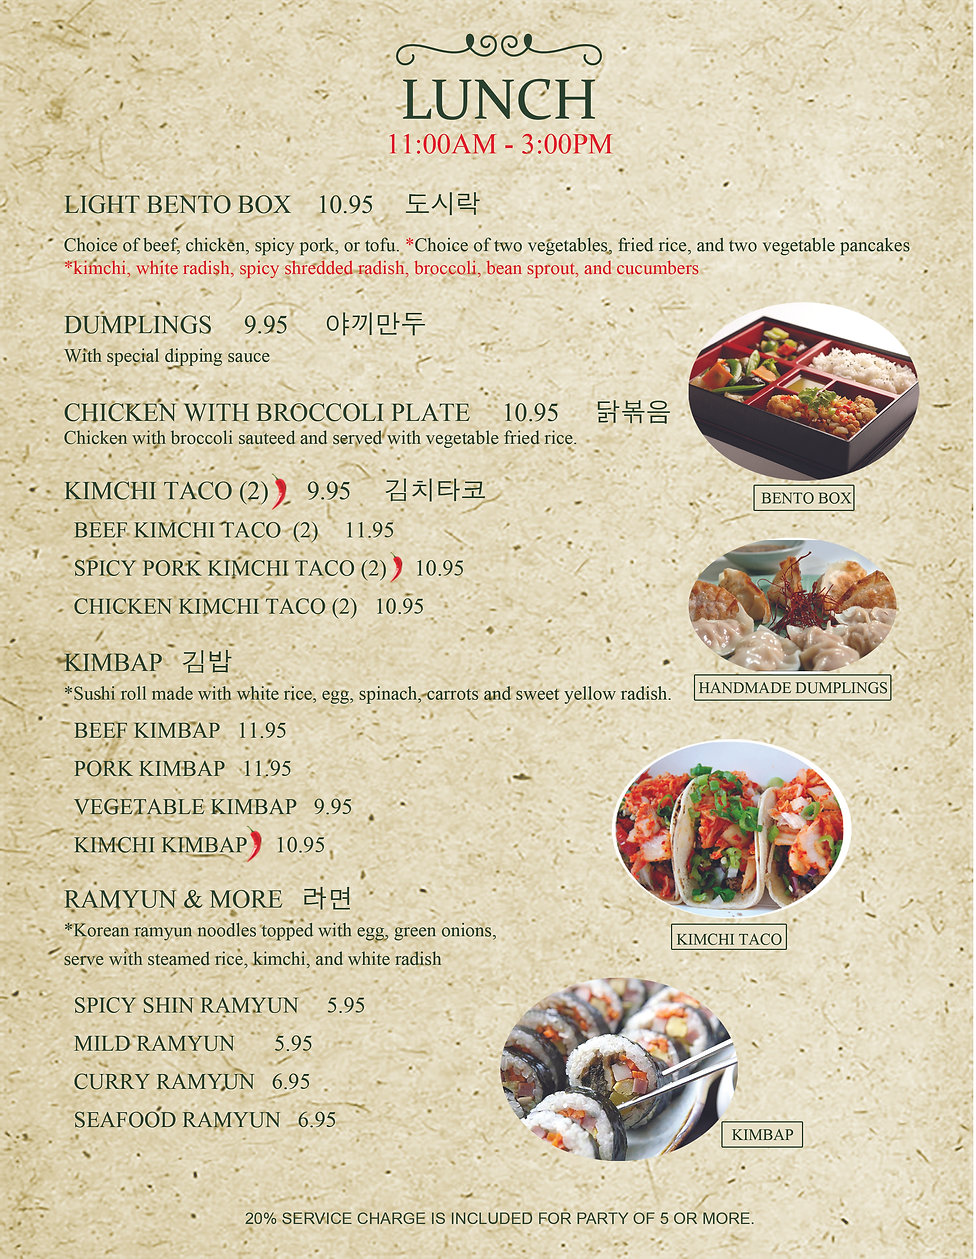 Seoul Garden Menu Lunch.jpg